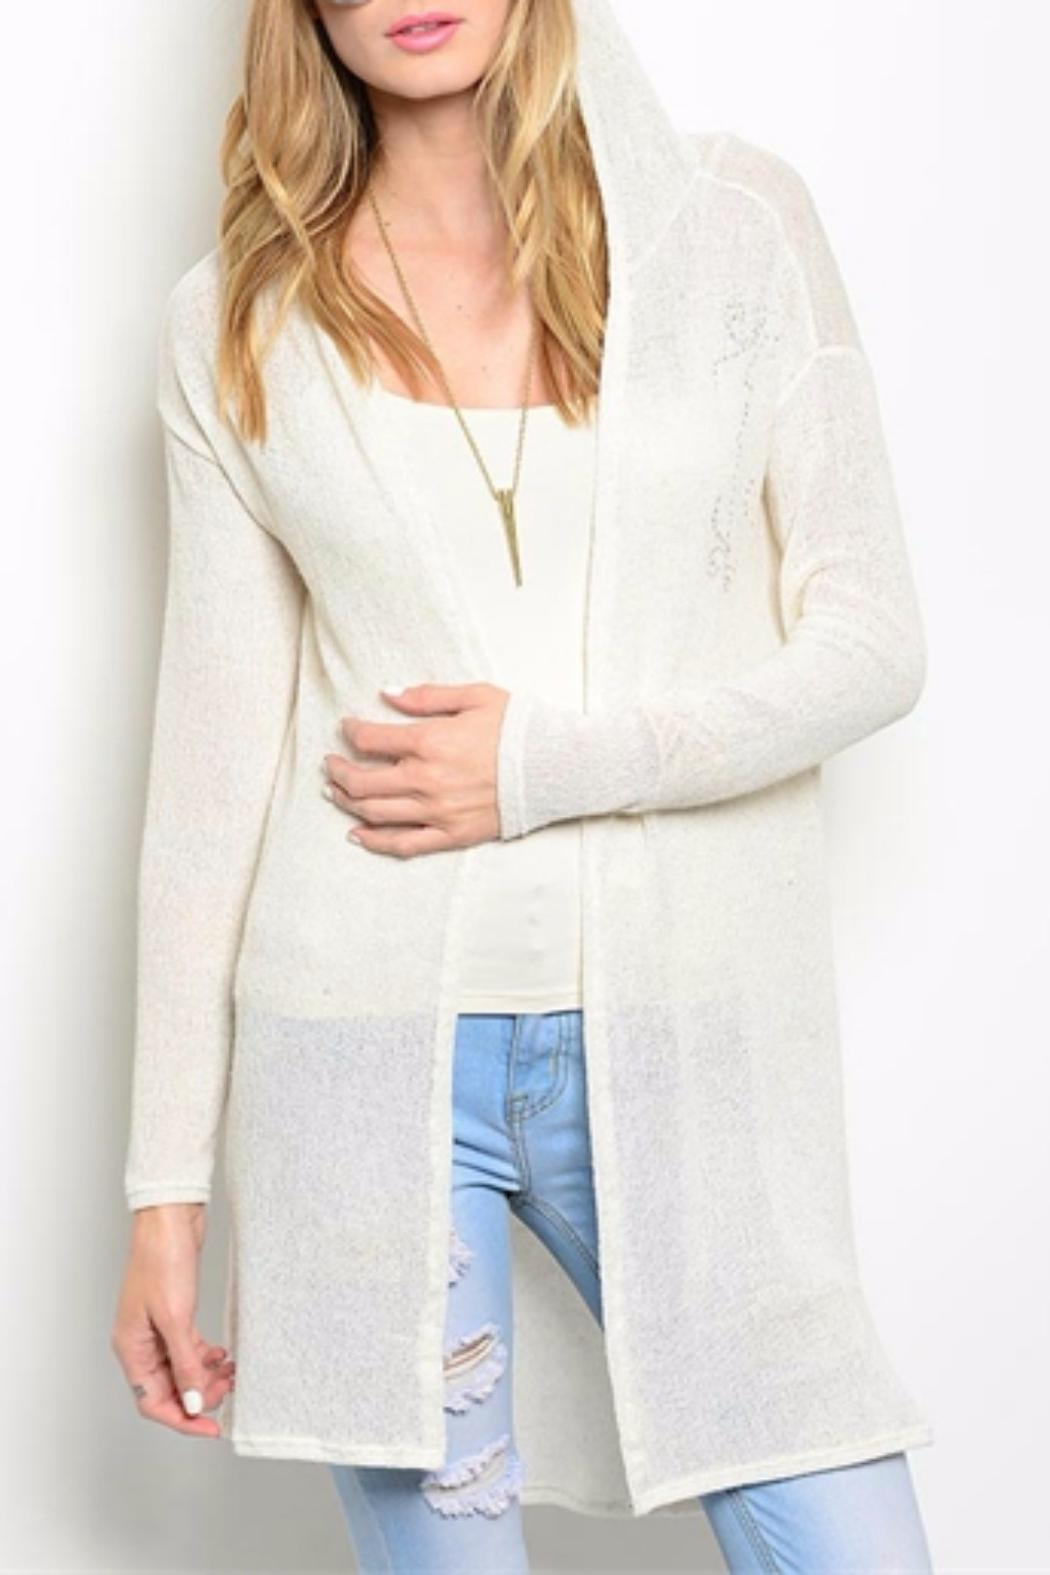 Wish & Whim Cream Hooded Cardigan from Tennessee by Cosmo — Shoptiques